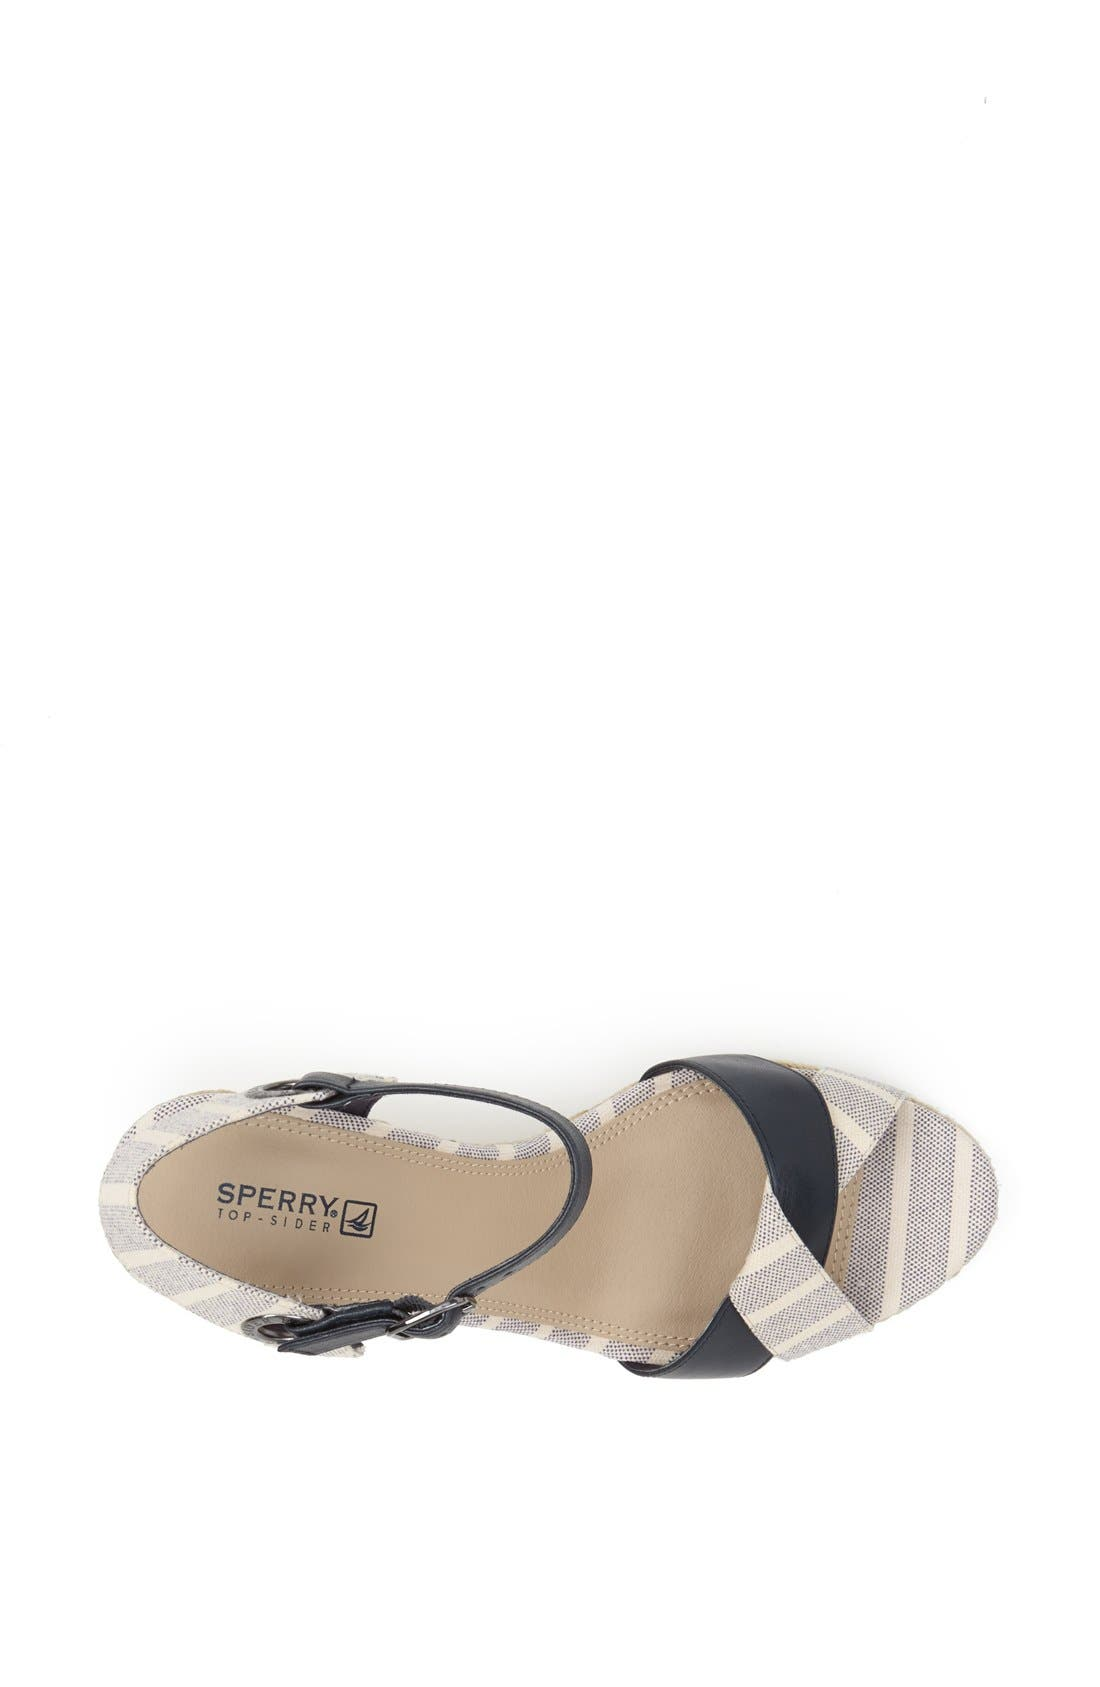 Alternate Image 3  - Sperry 'Saylor' Sandal (Women)